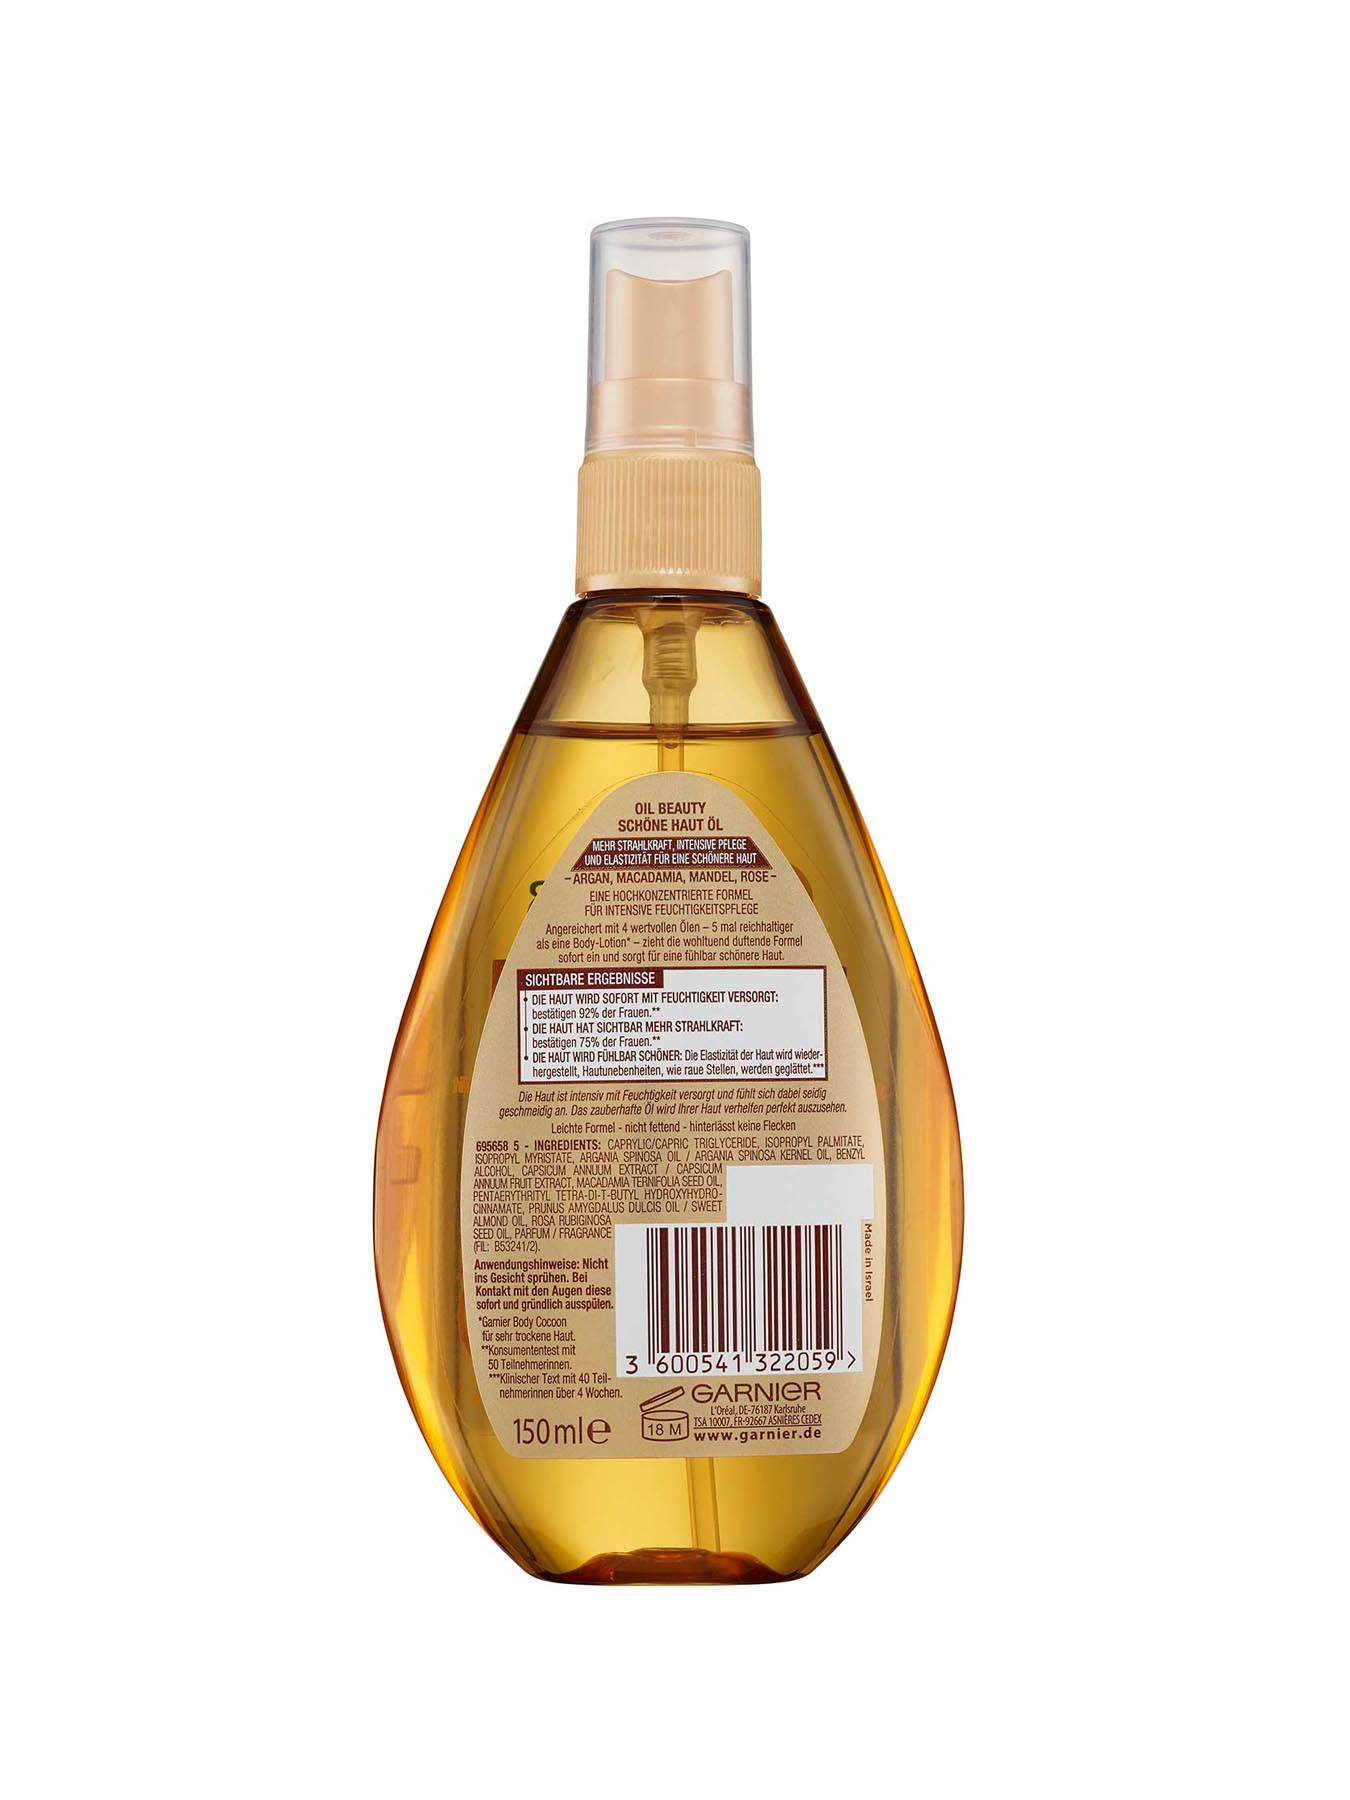 Schoene-Haut-Oel-Body-Oil-Beauty-150ml-Rueckseite-Garnier-Deutschland-gr